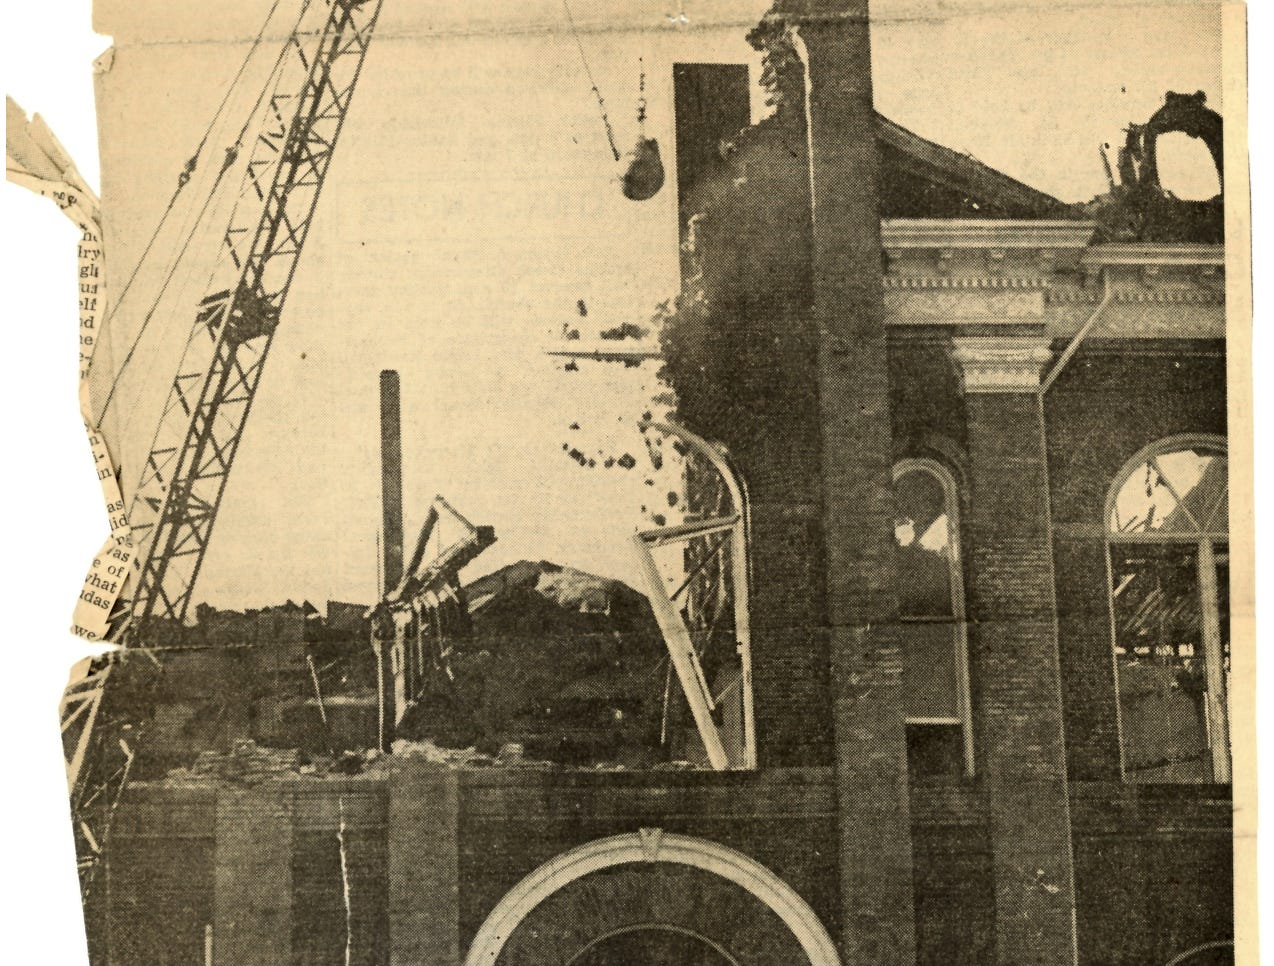 Several days after the fire, a wrecking ball is brought in to knock down some of the walls.